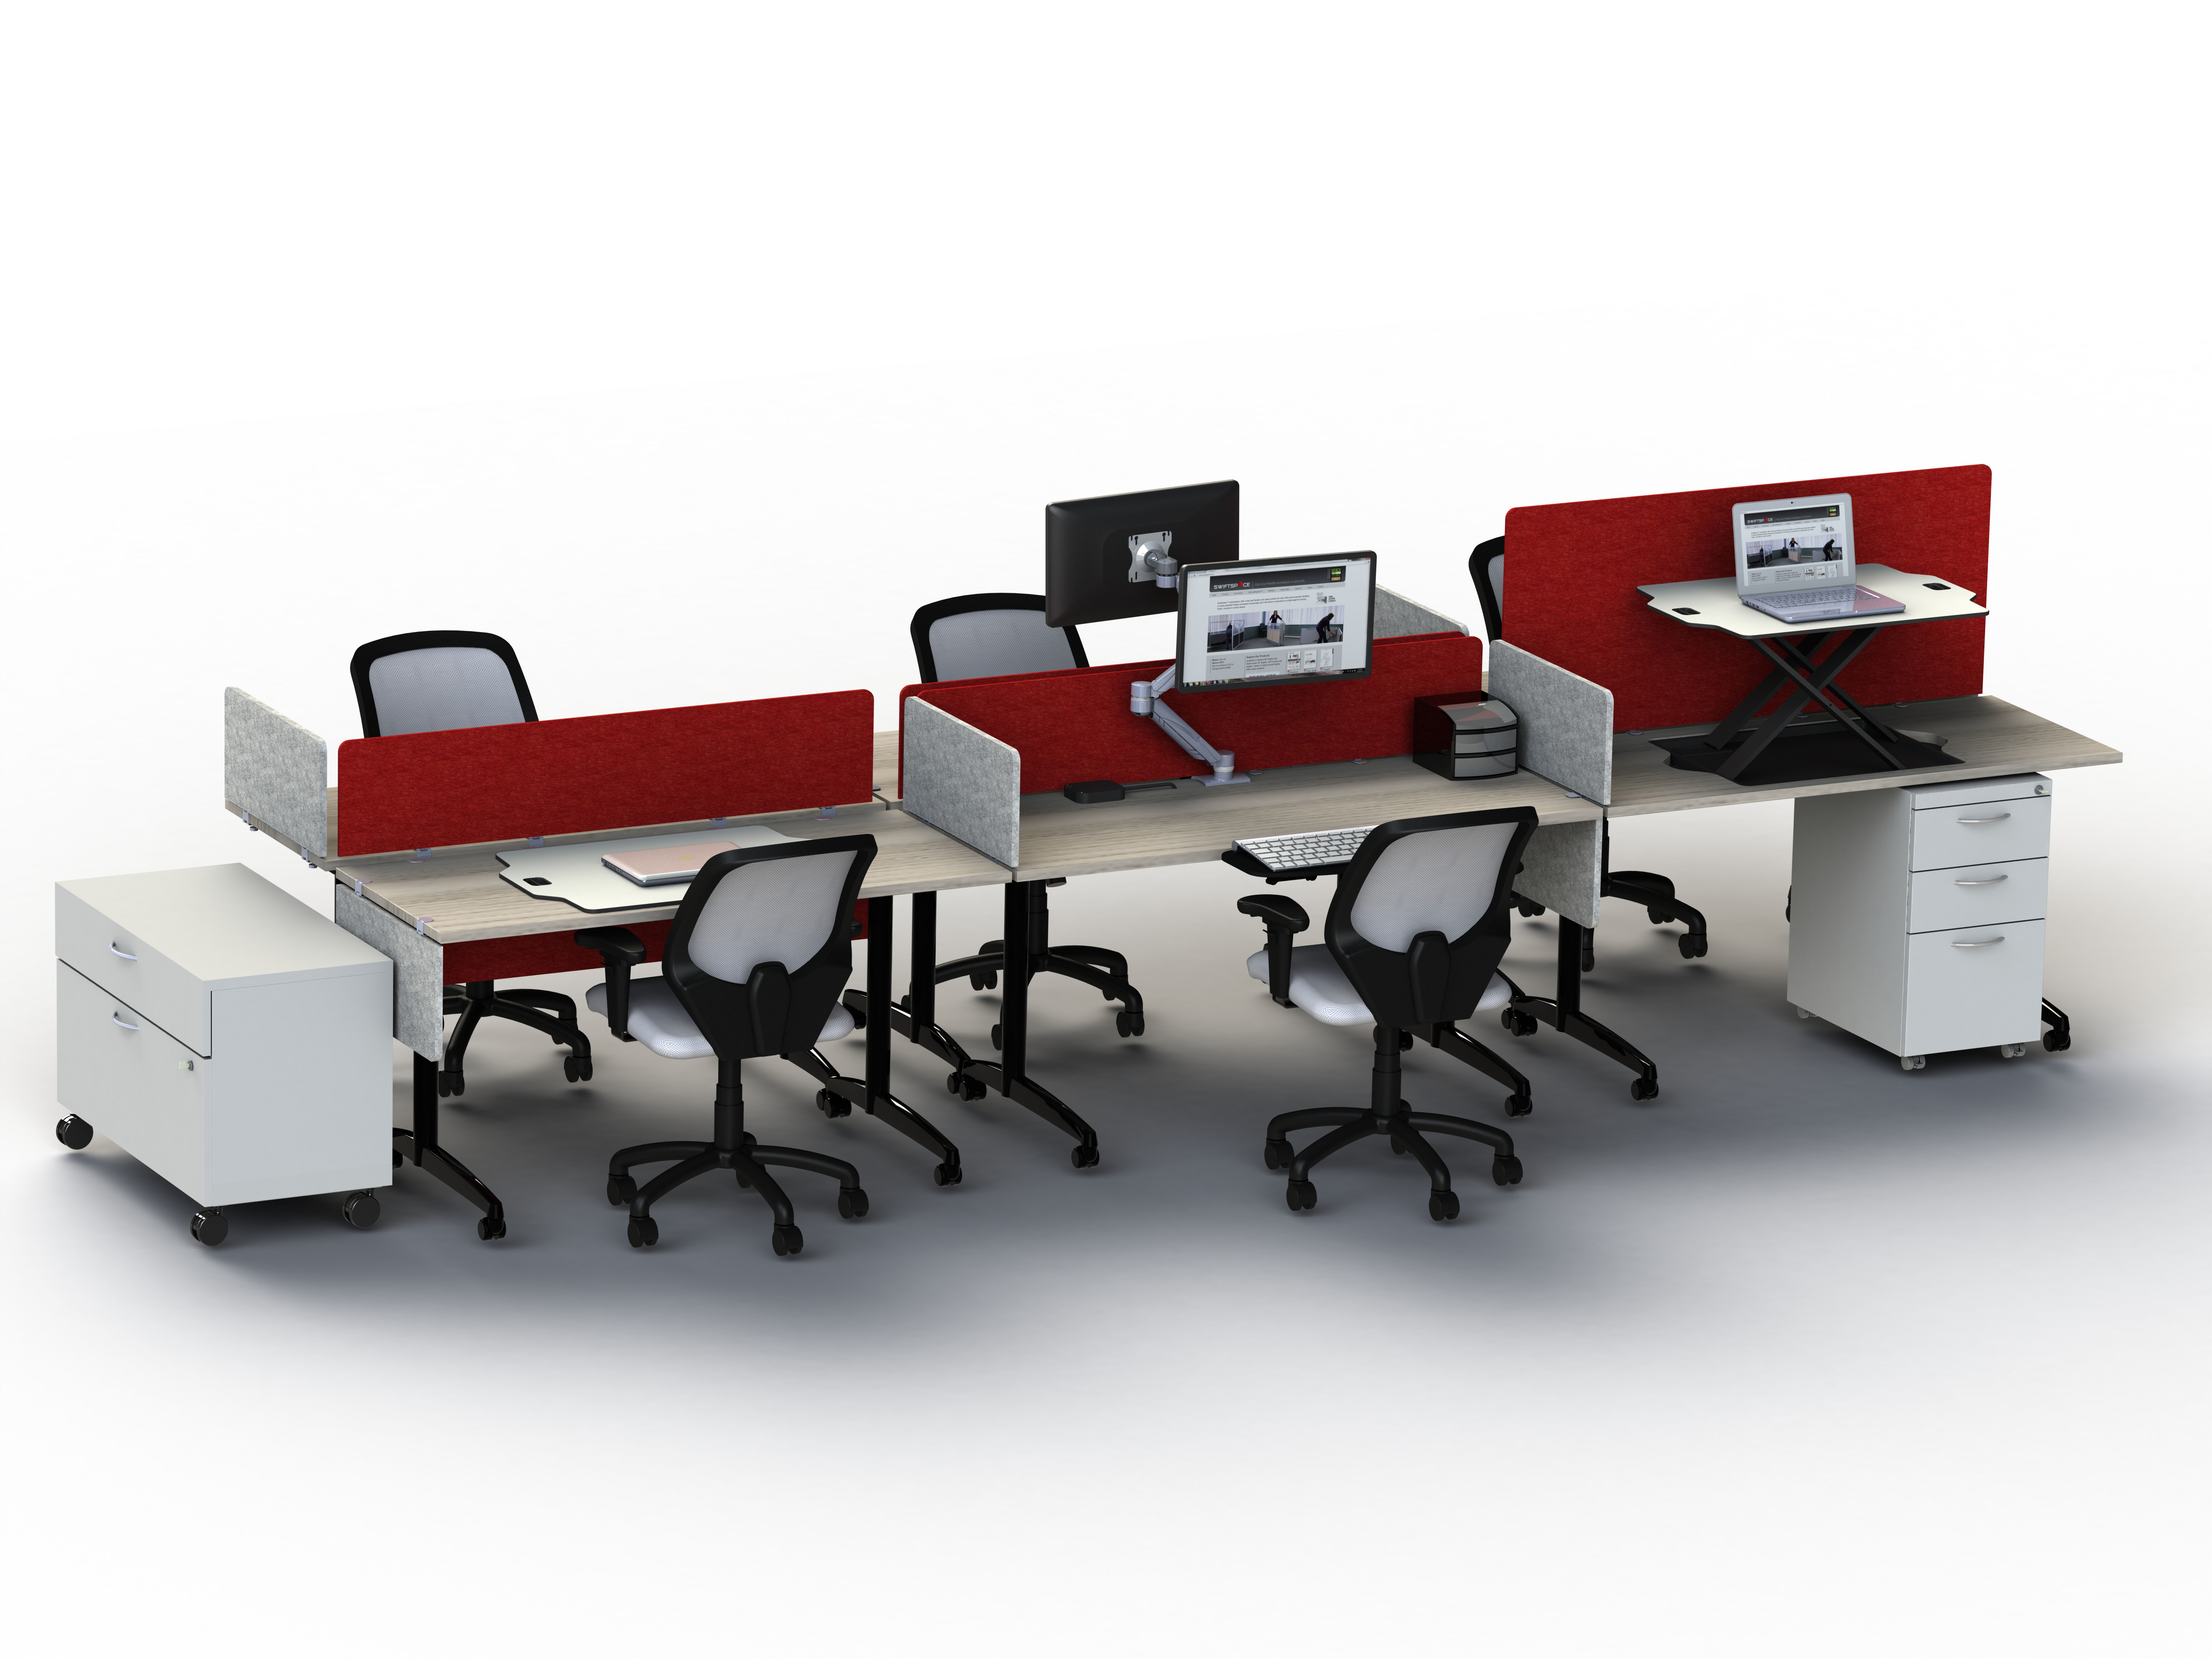 Swiftspace Unify Family-workbenches